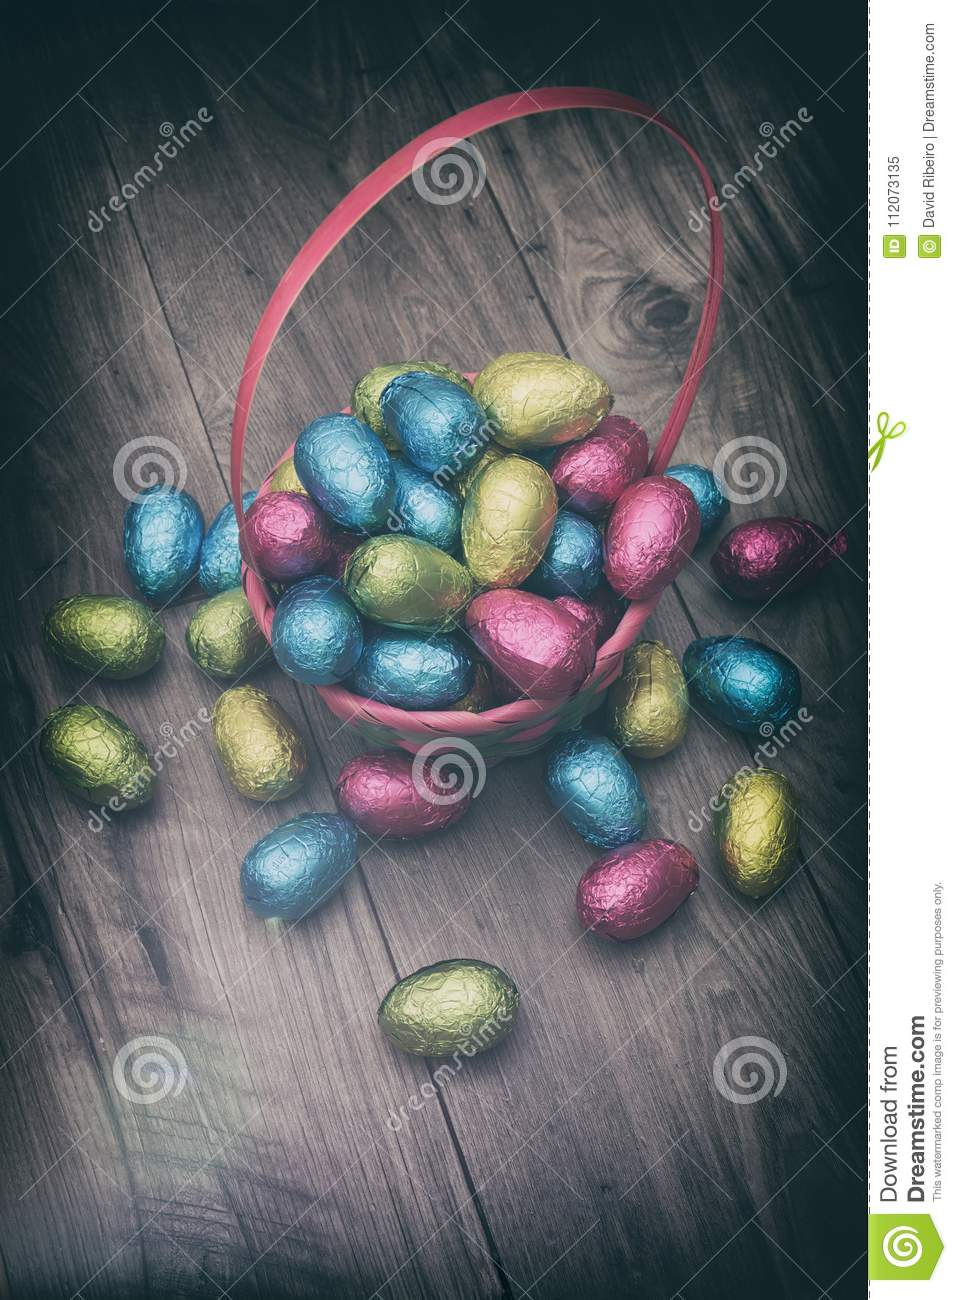 Straw basket filled with Easter chocolate eggs wrapped in colorful tinfoil